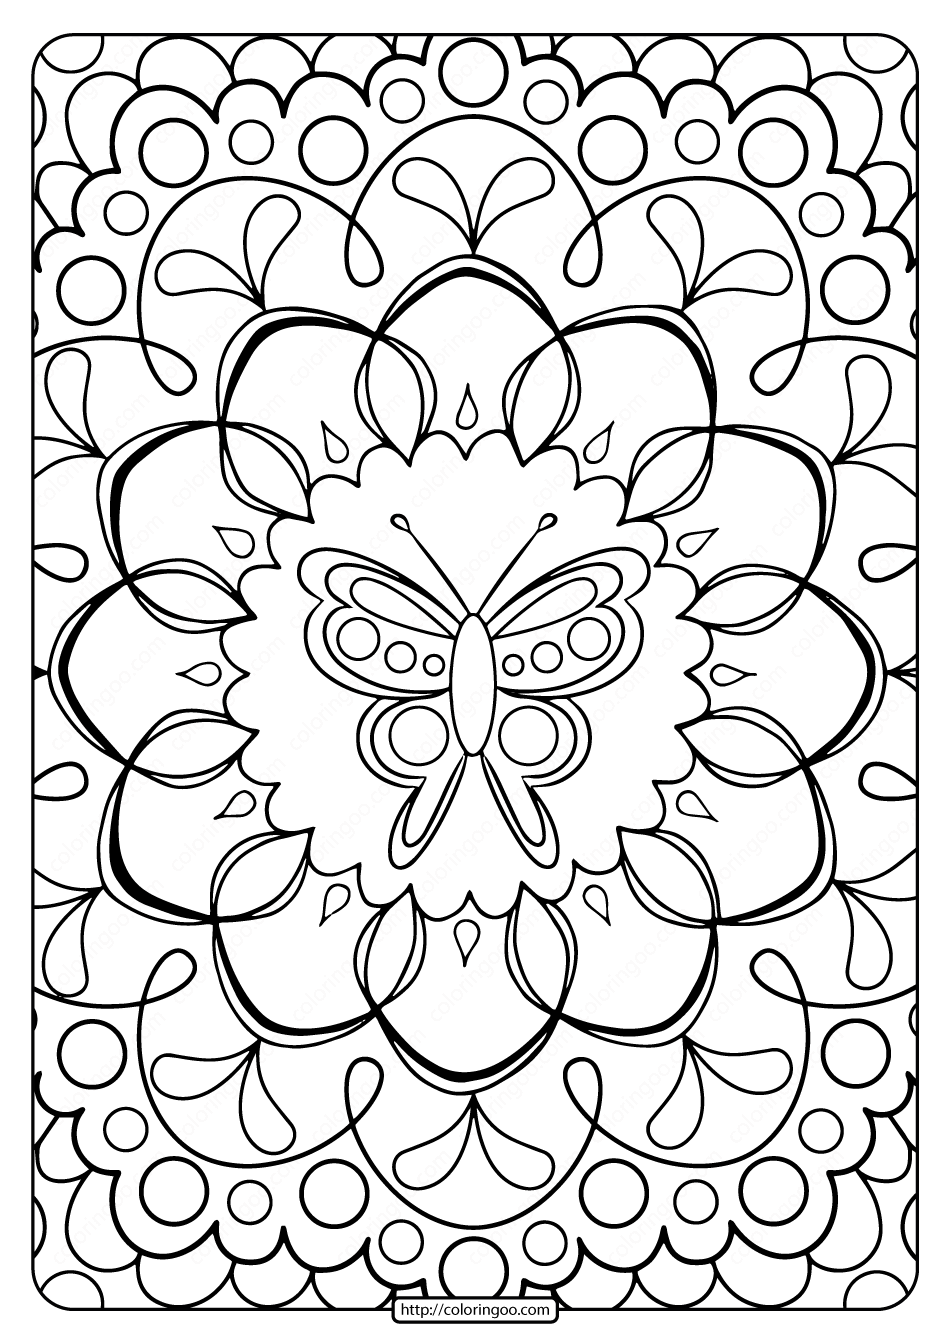 coloring book for adults easy zentangle simple zentangle adult coloring pages page 3 adults for coloring easy book